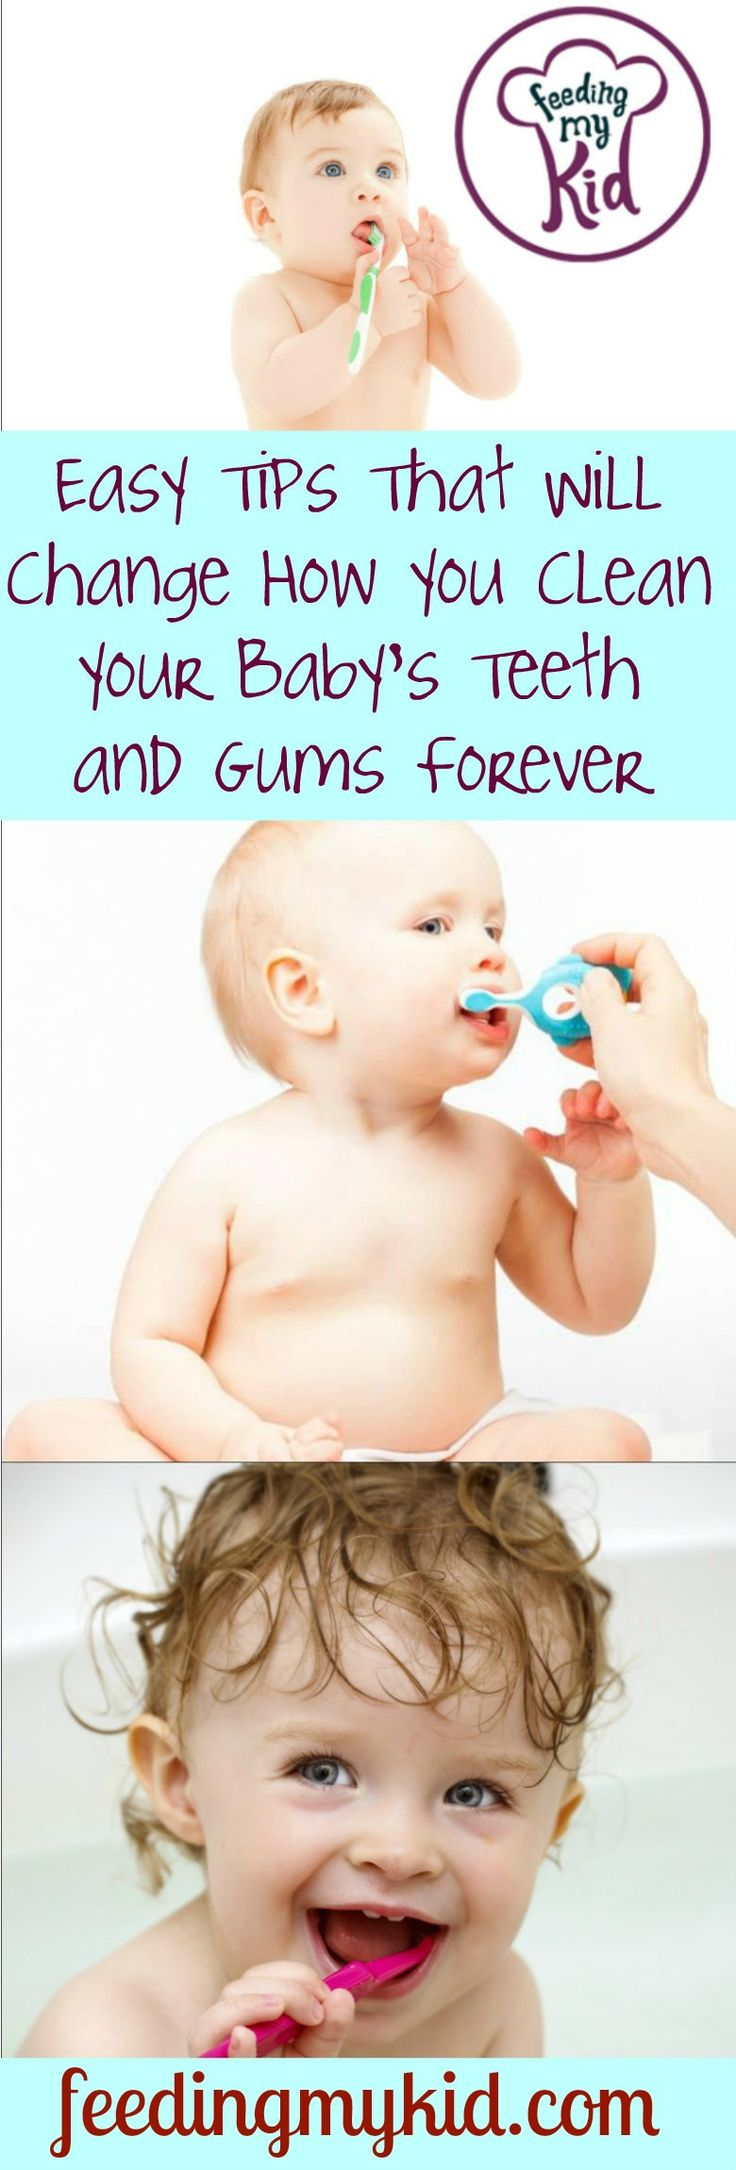 Check out these videos about brushing baby teeth and brushing your baby's gums. First, learn to do it with a baby cloth. Then, transition to a toothbrush!